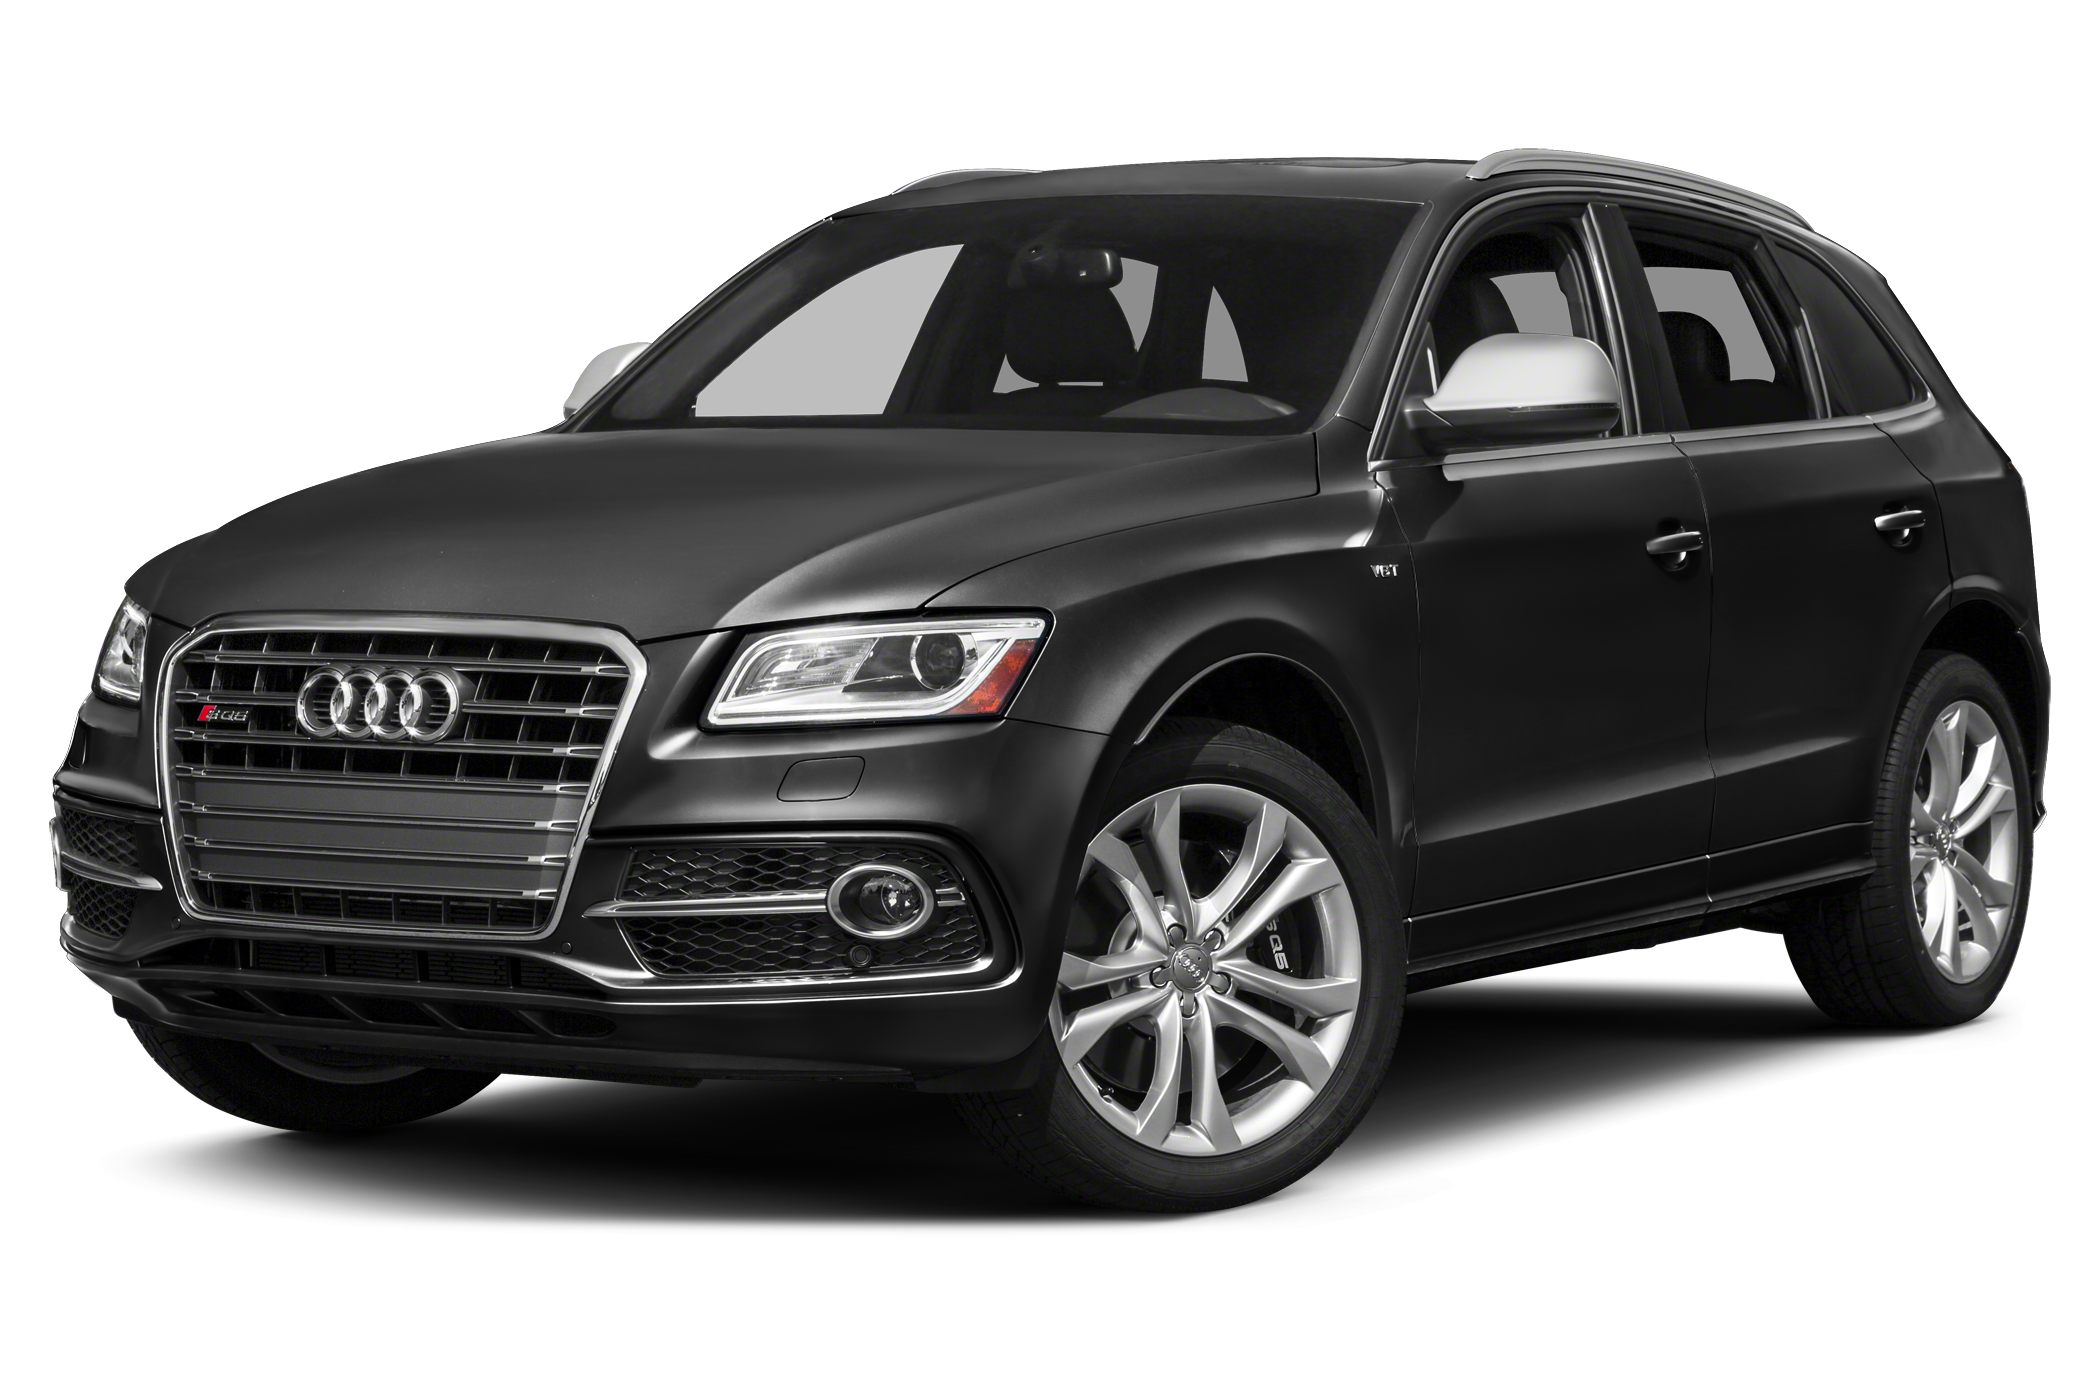 2018 Audi Sq5 News Pictures Specs Performance | 2017 - 2018 Cars Price ...